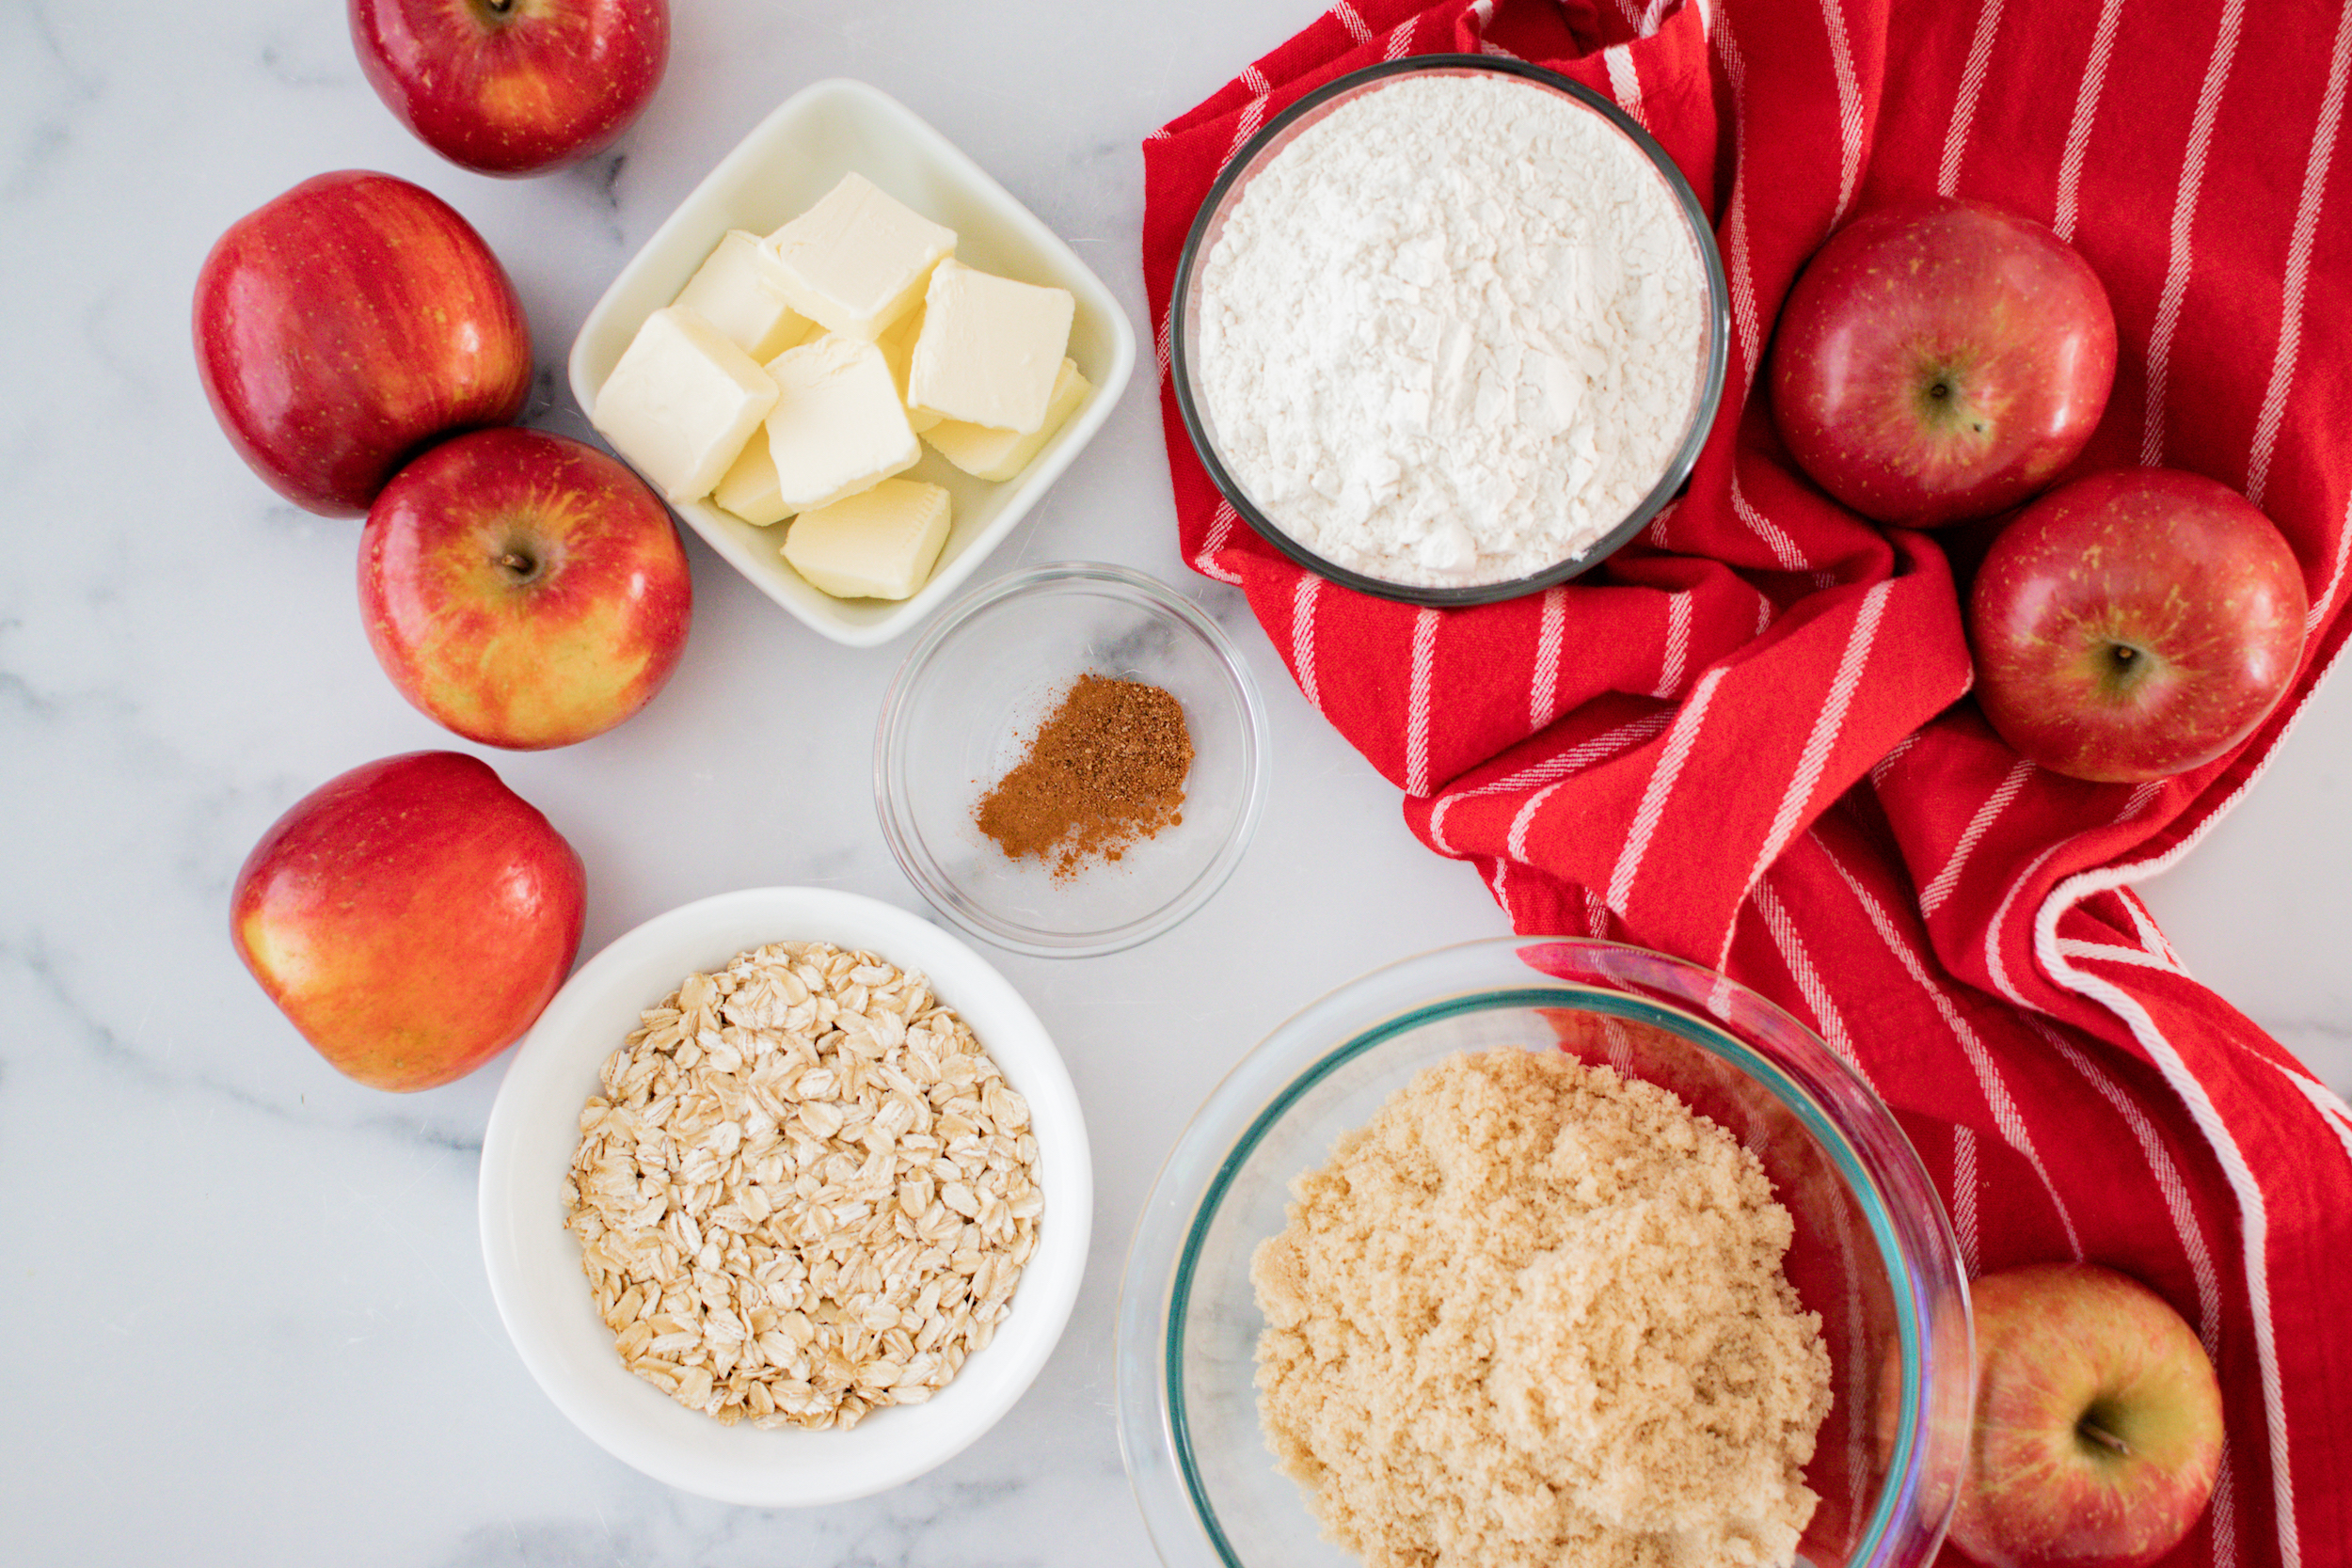 ingredients for apple crisp including butter in a white bowl, flour, cinnamon, oats and brown sugar in individual bowls and a red napkin.